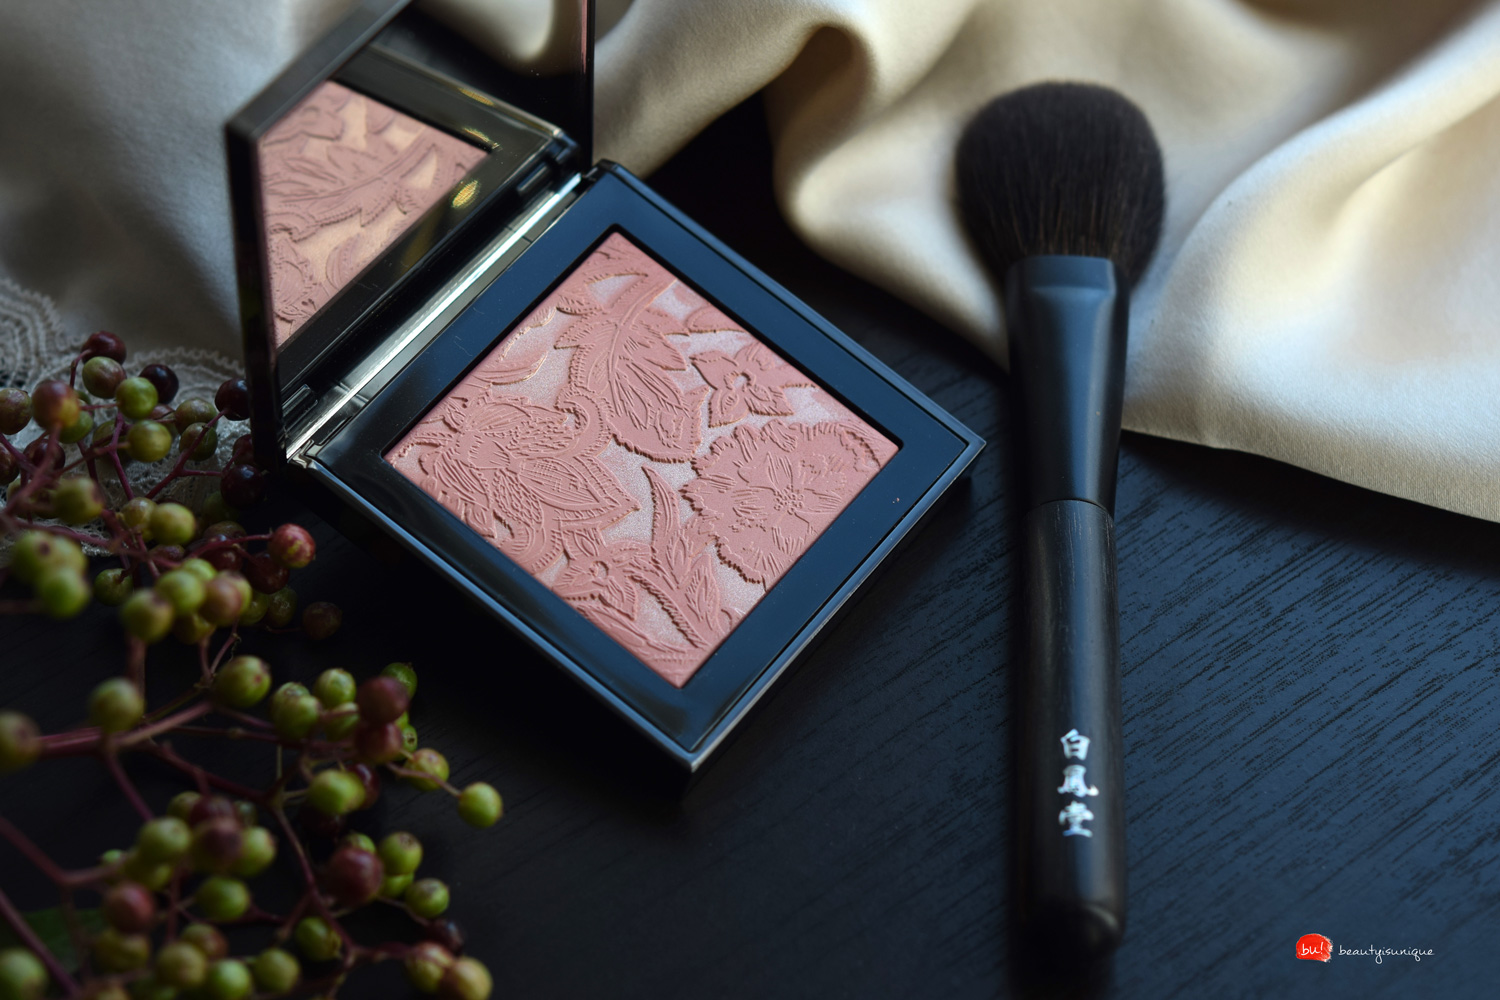 burberry-blush-palette-2017